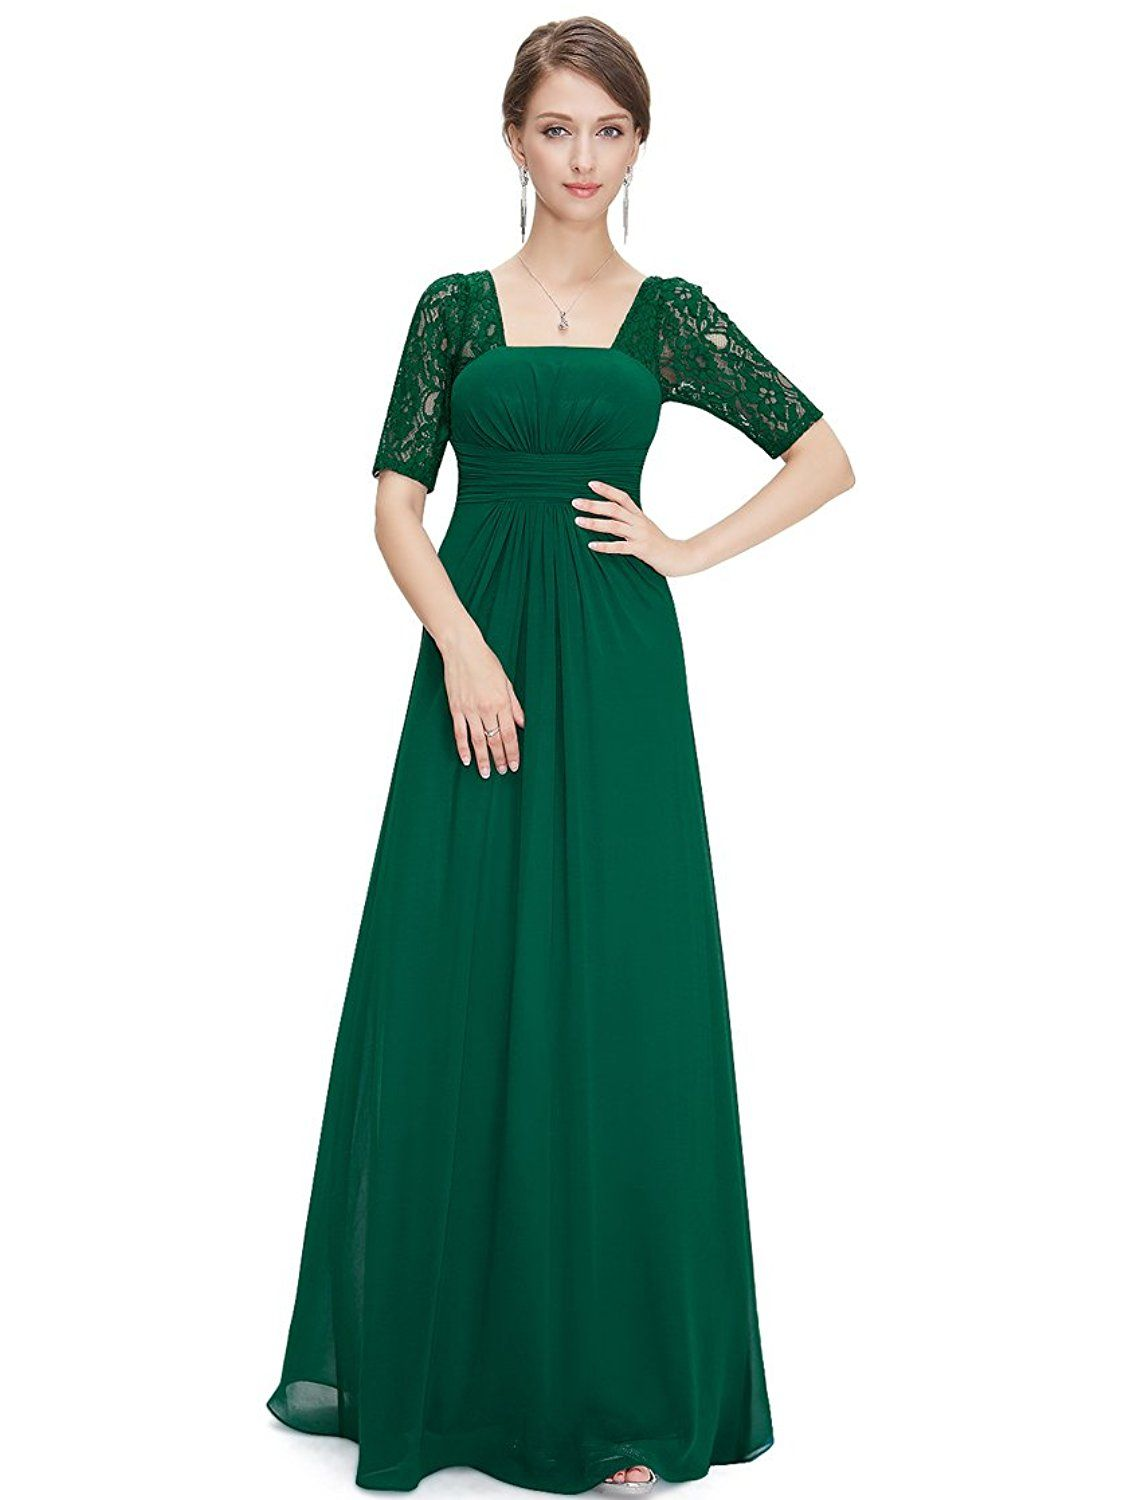 5dea51236d Ever Pretty Half Sleeve Square Neckline Ruched Waist Evening Dress 08038      Trust me